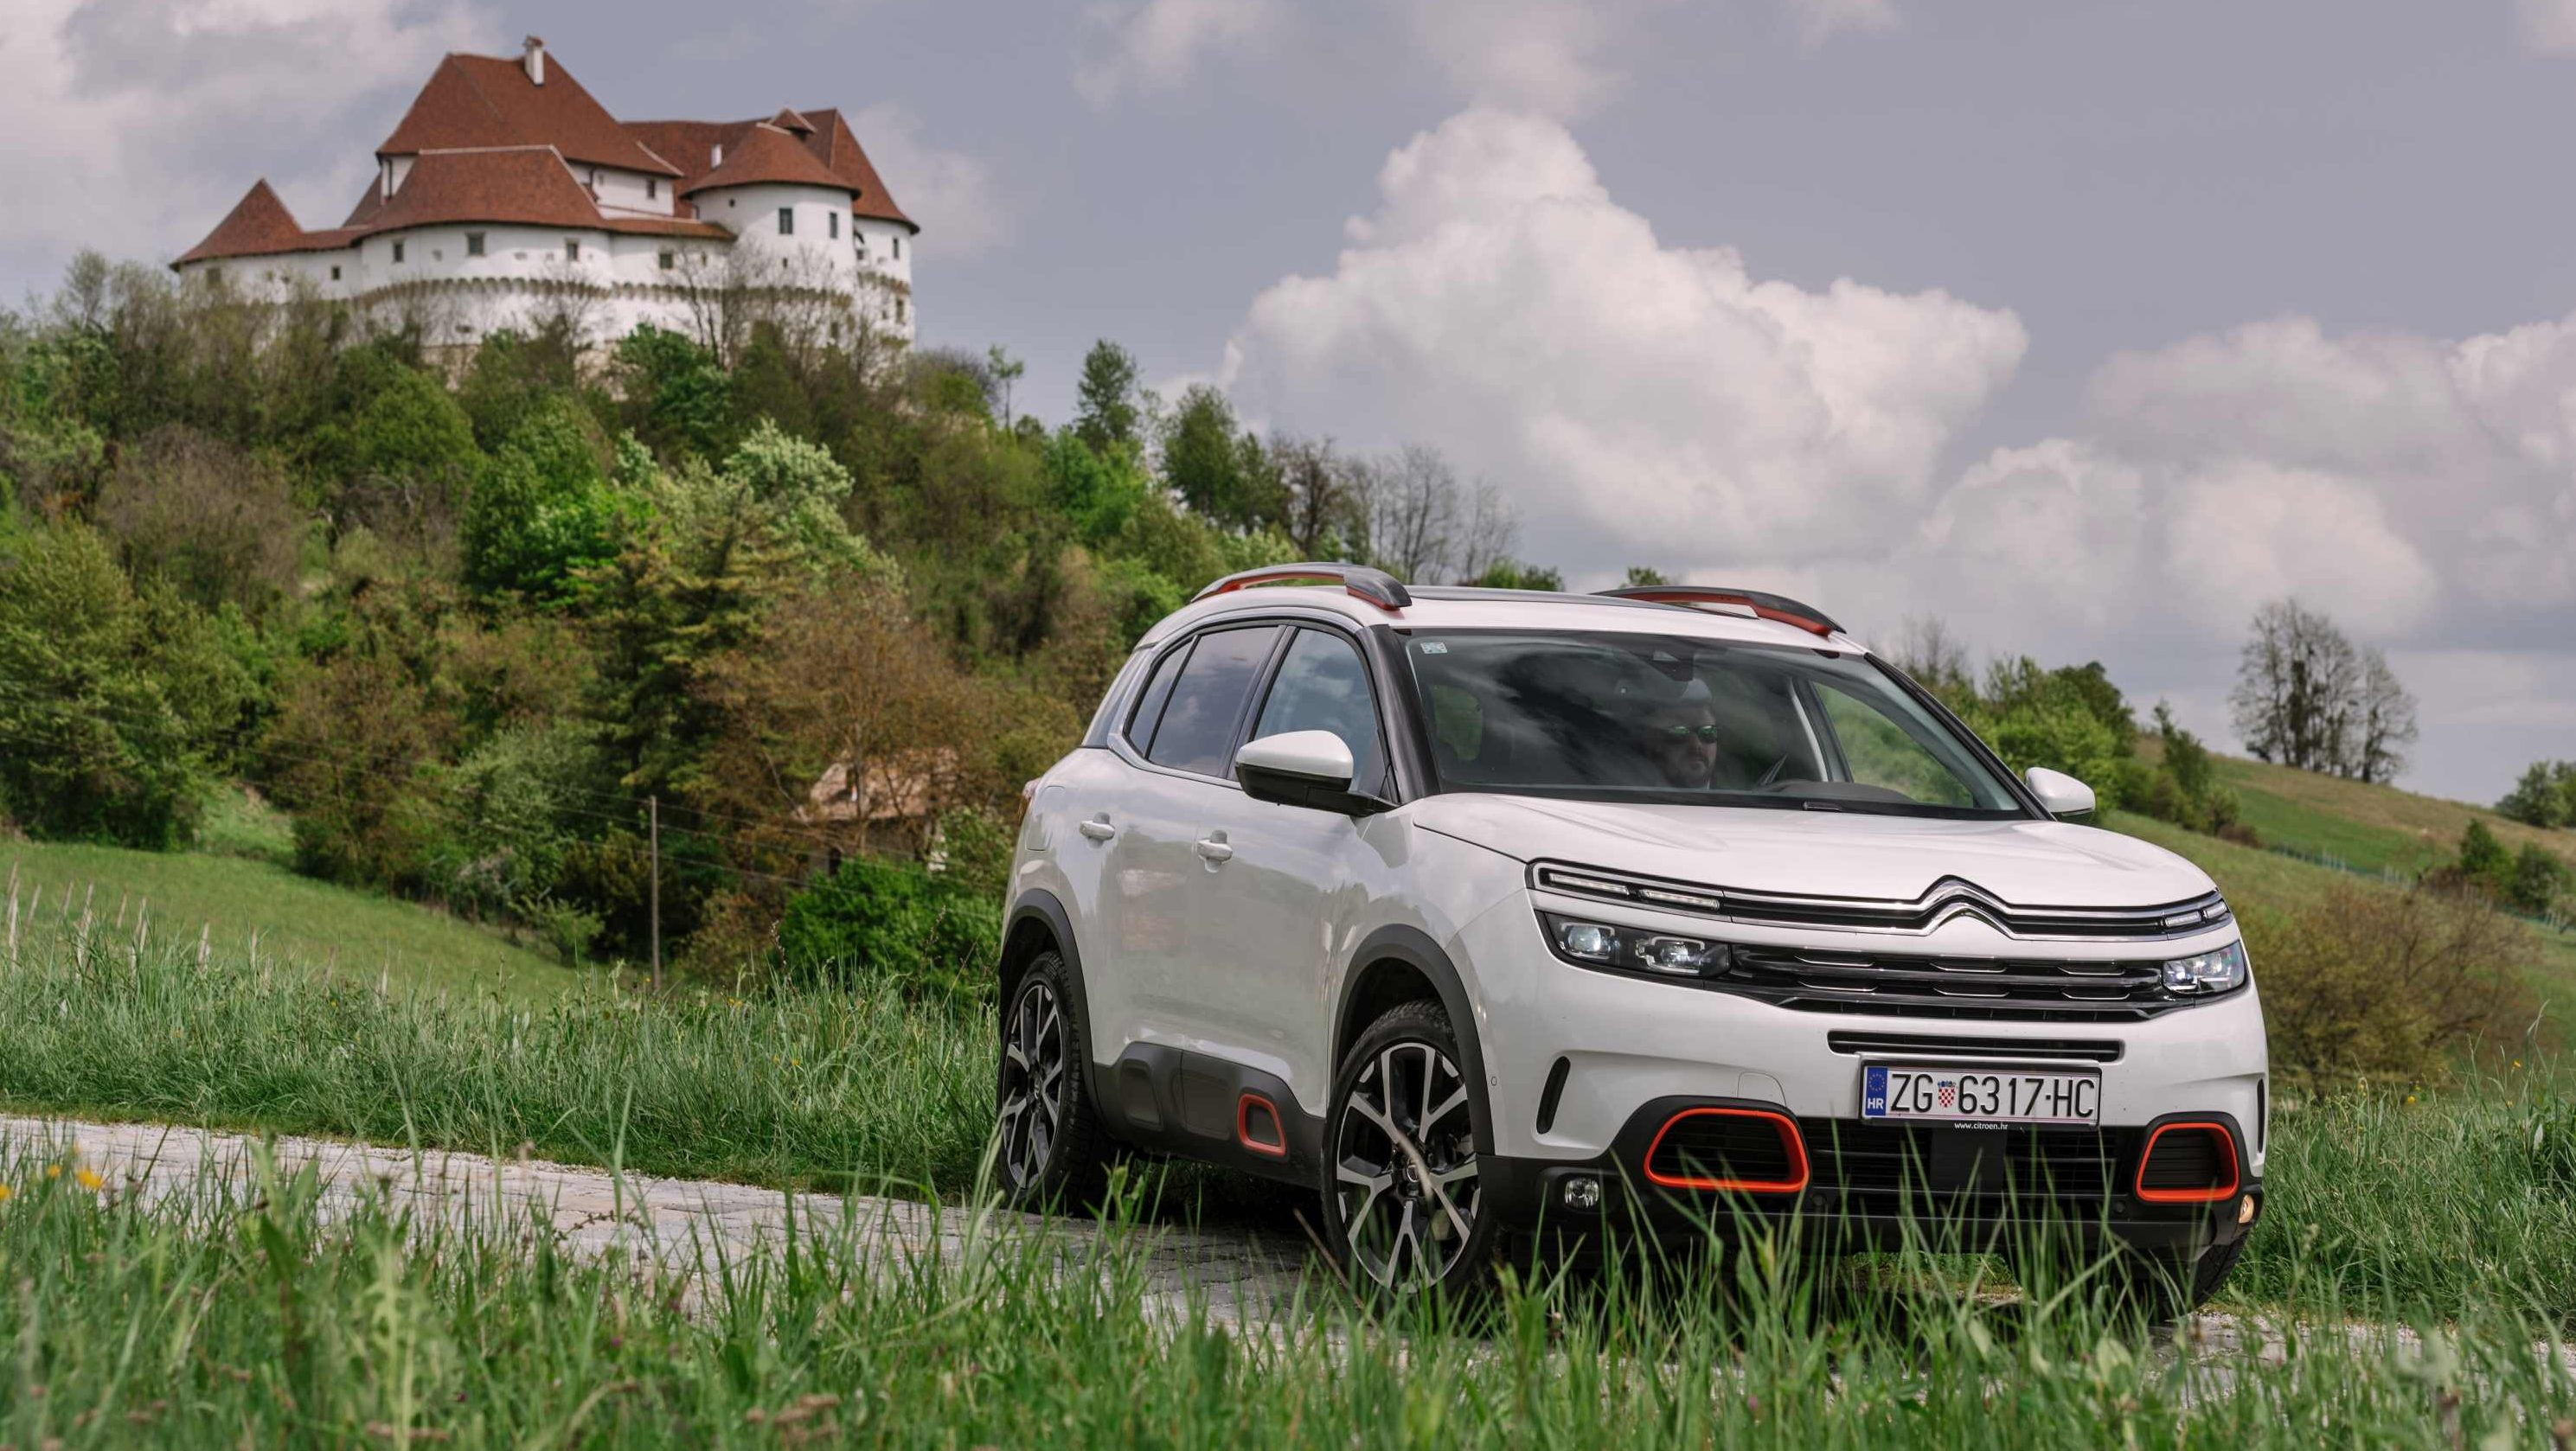 Image forTest: Citroën C5 Aircross Shine BlueHDi 180 S&S EAT8